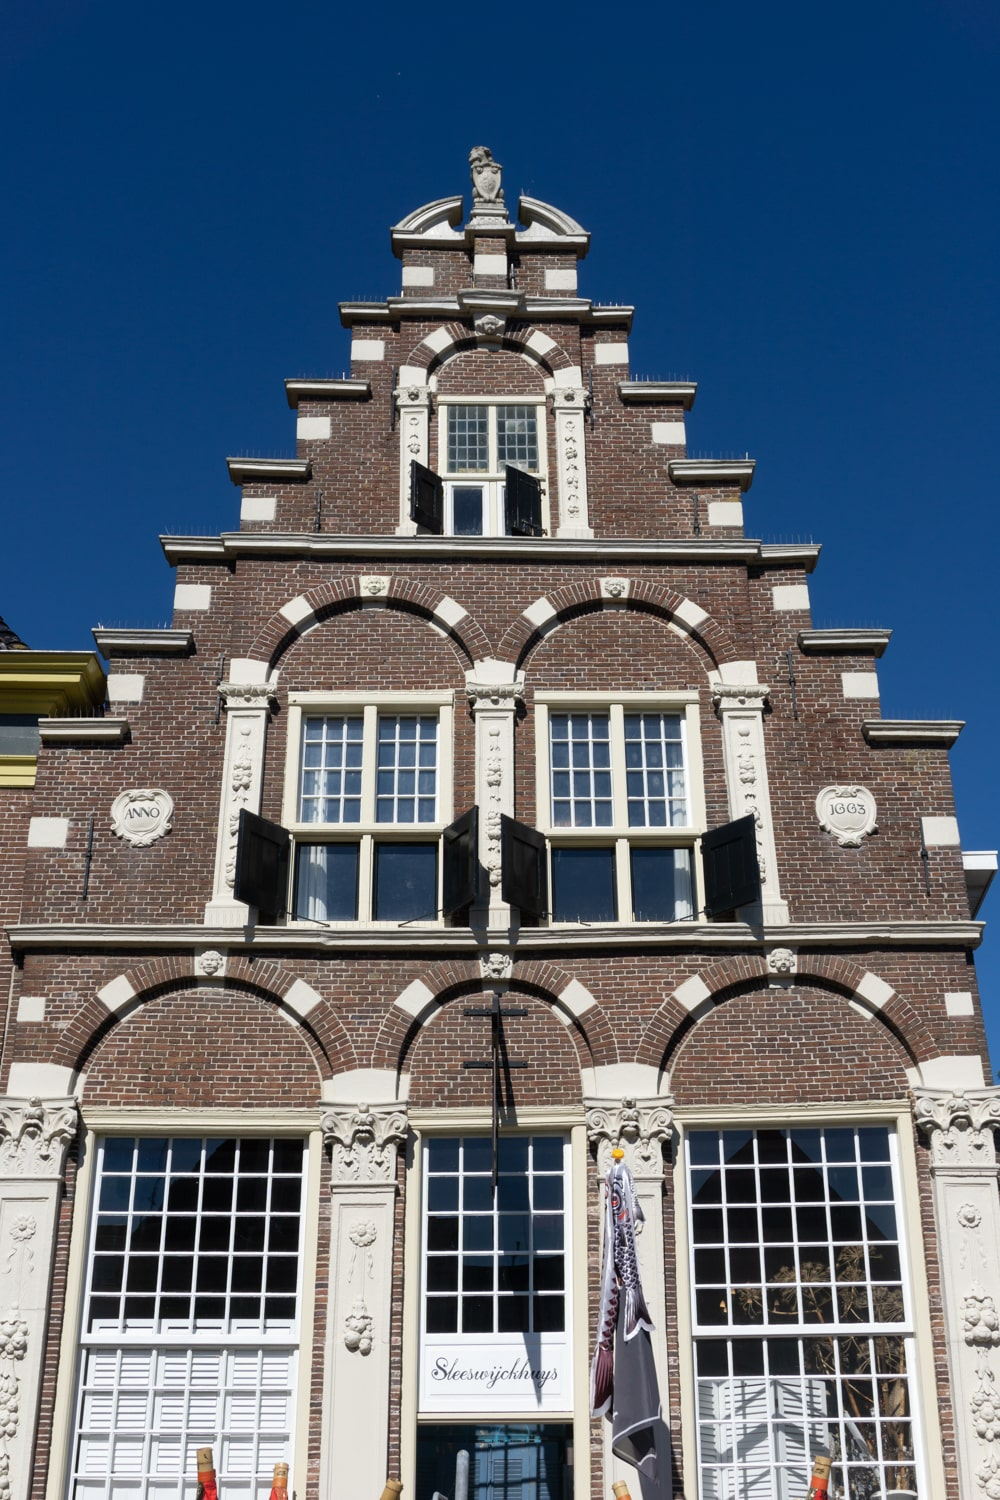 Gevelstenenmuur in Workum